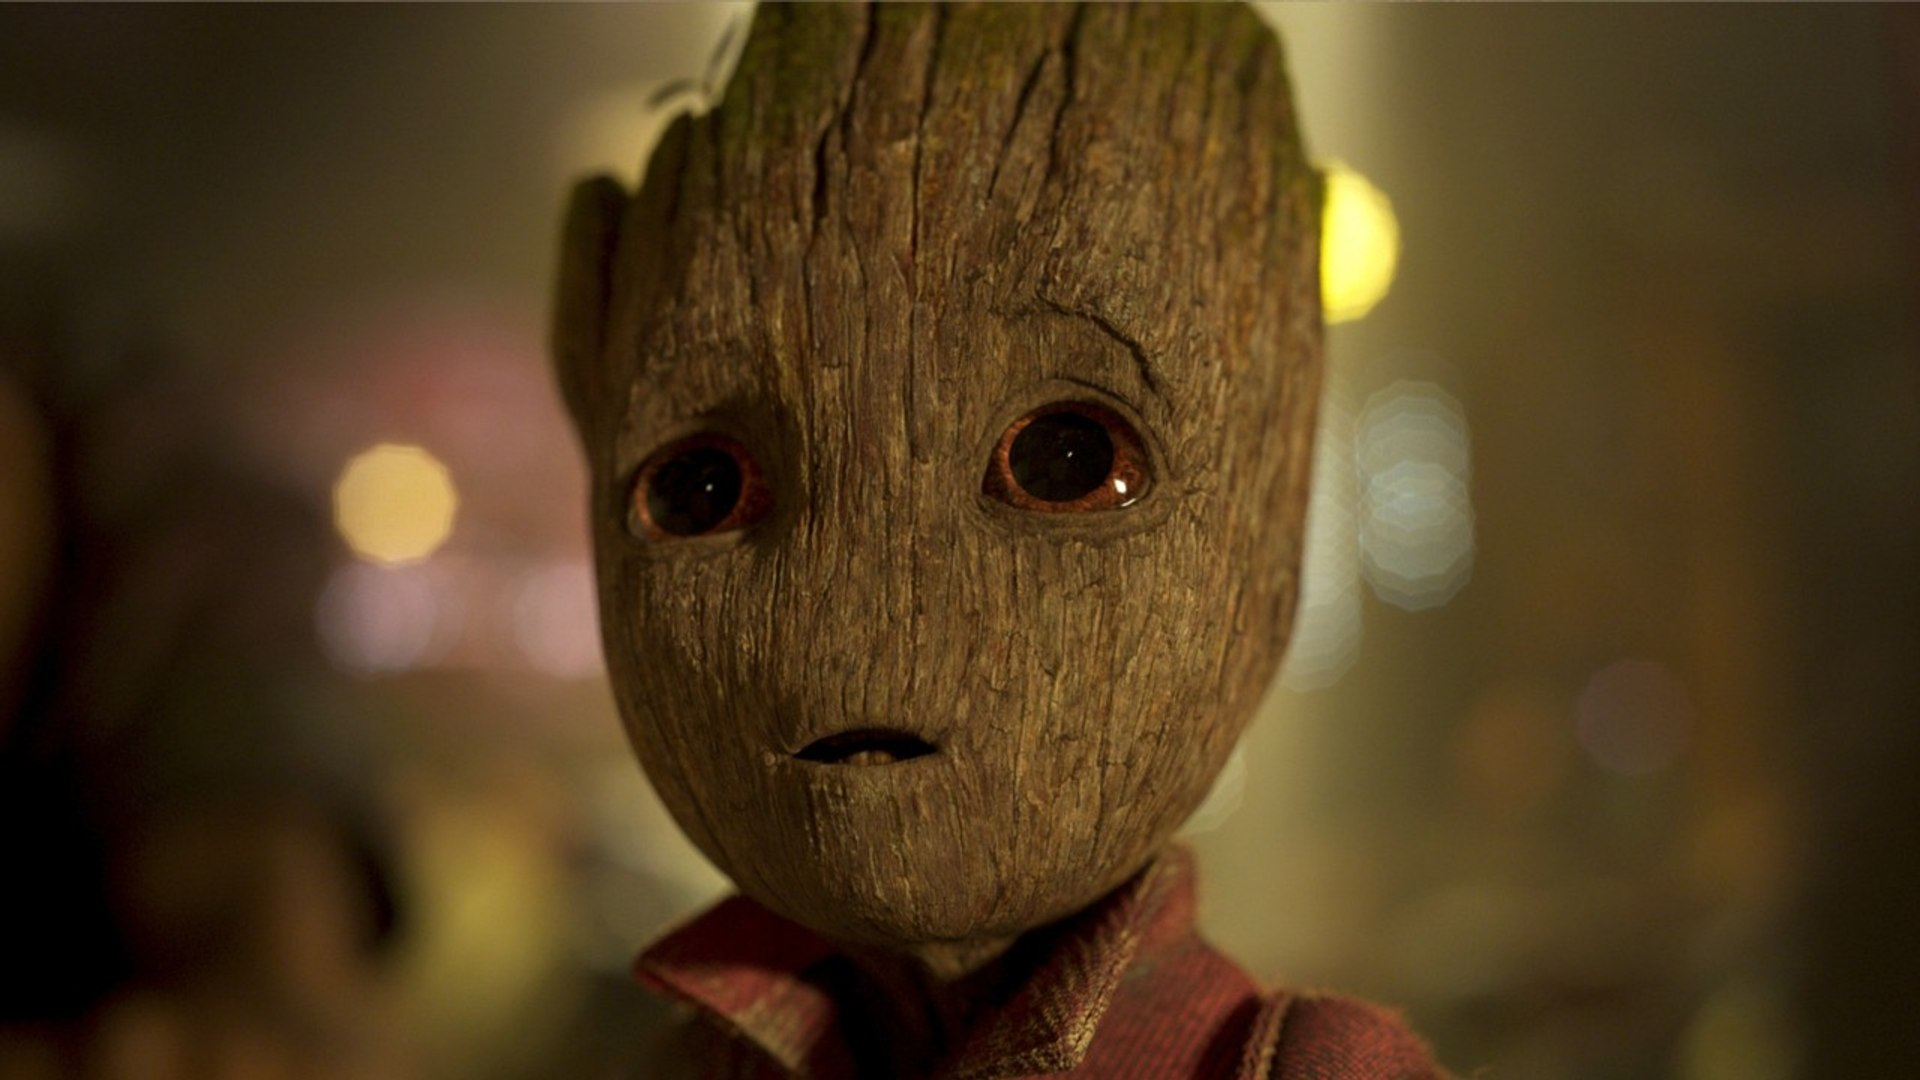 Is Teenage Groot Basically A Kid Too Tall For His Age?